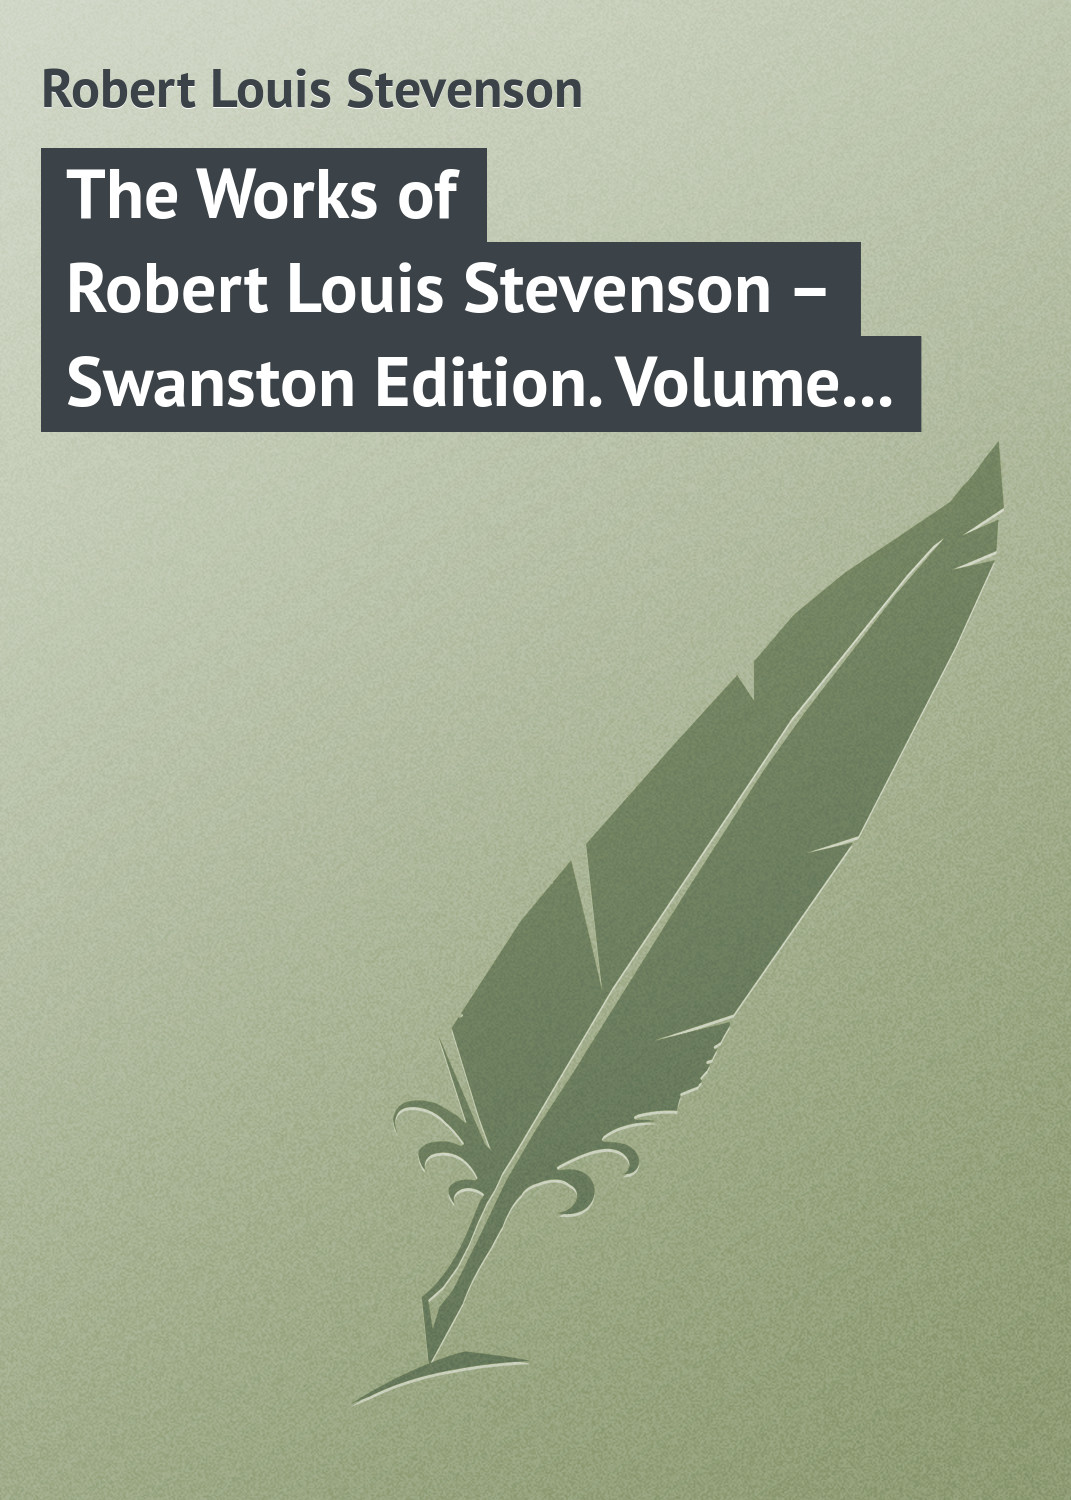 Роберт Льюис Стивенсон The Works of Robert Louis Stevenson – Swanston Edition. Volume 17 картридж hp c4911a 82 голубой 69мл designjet 500 510